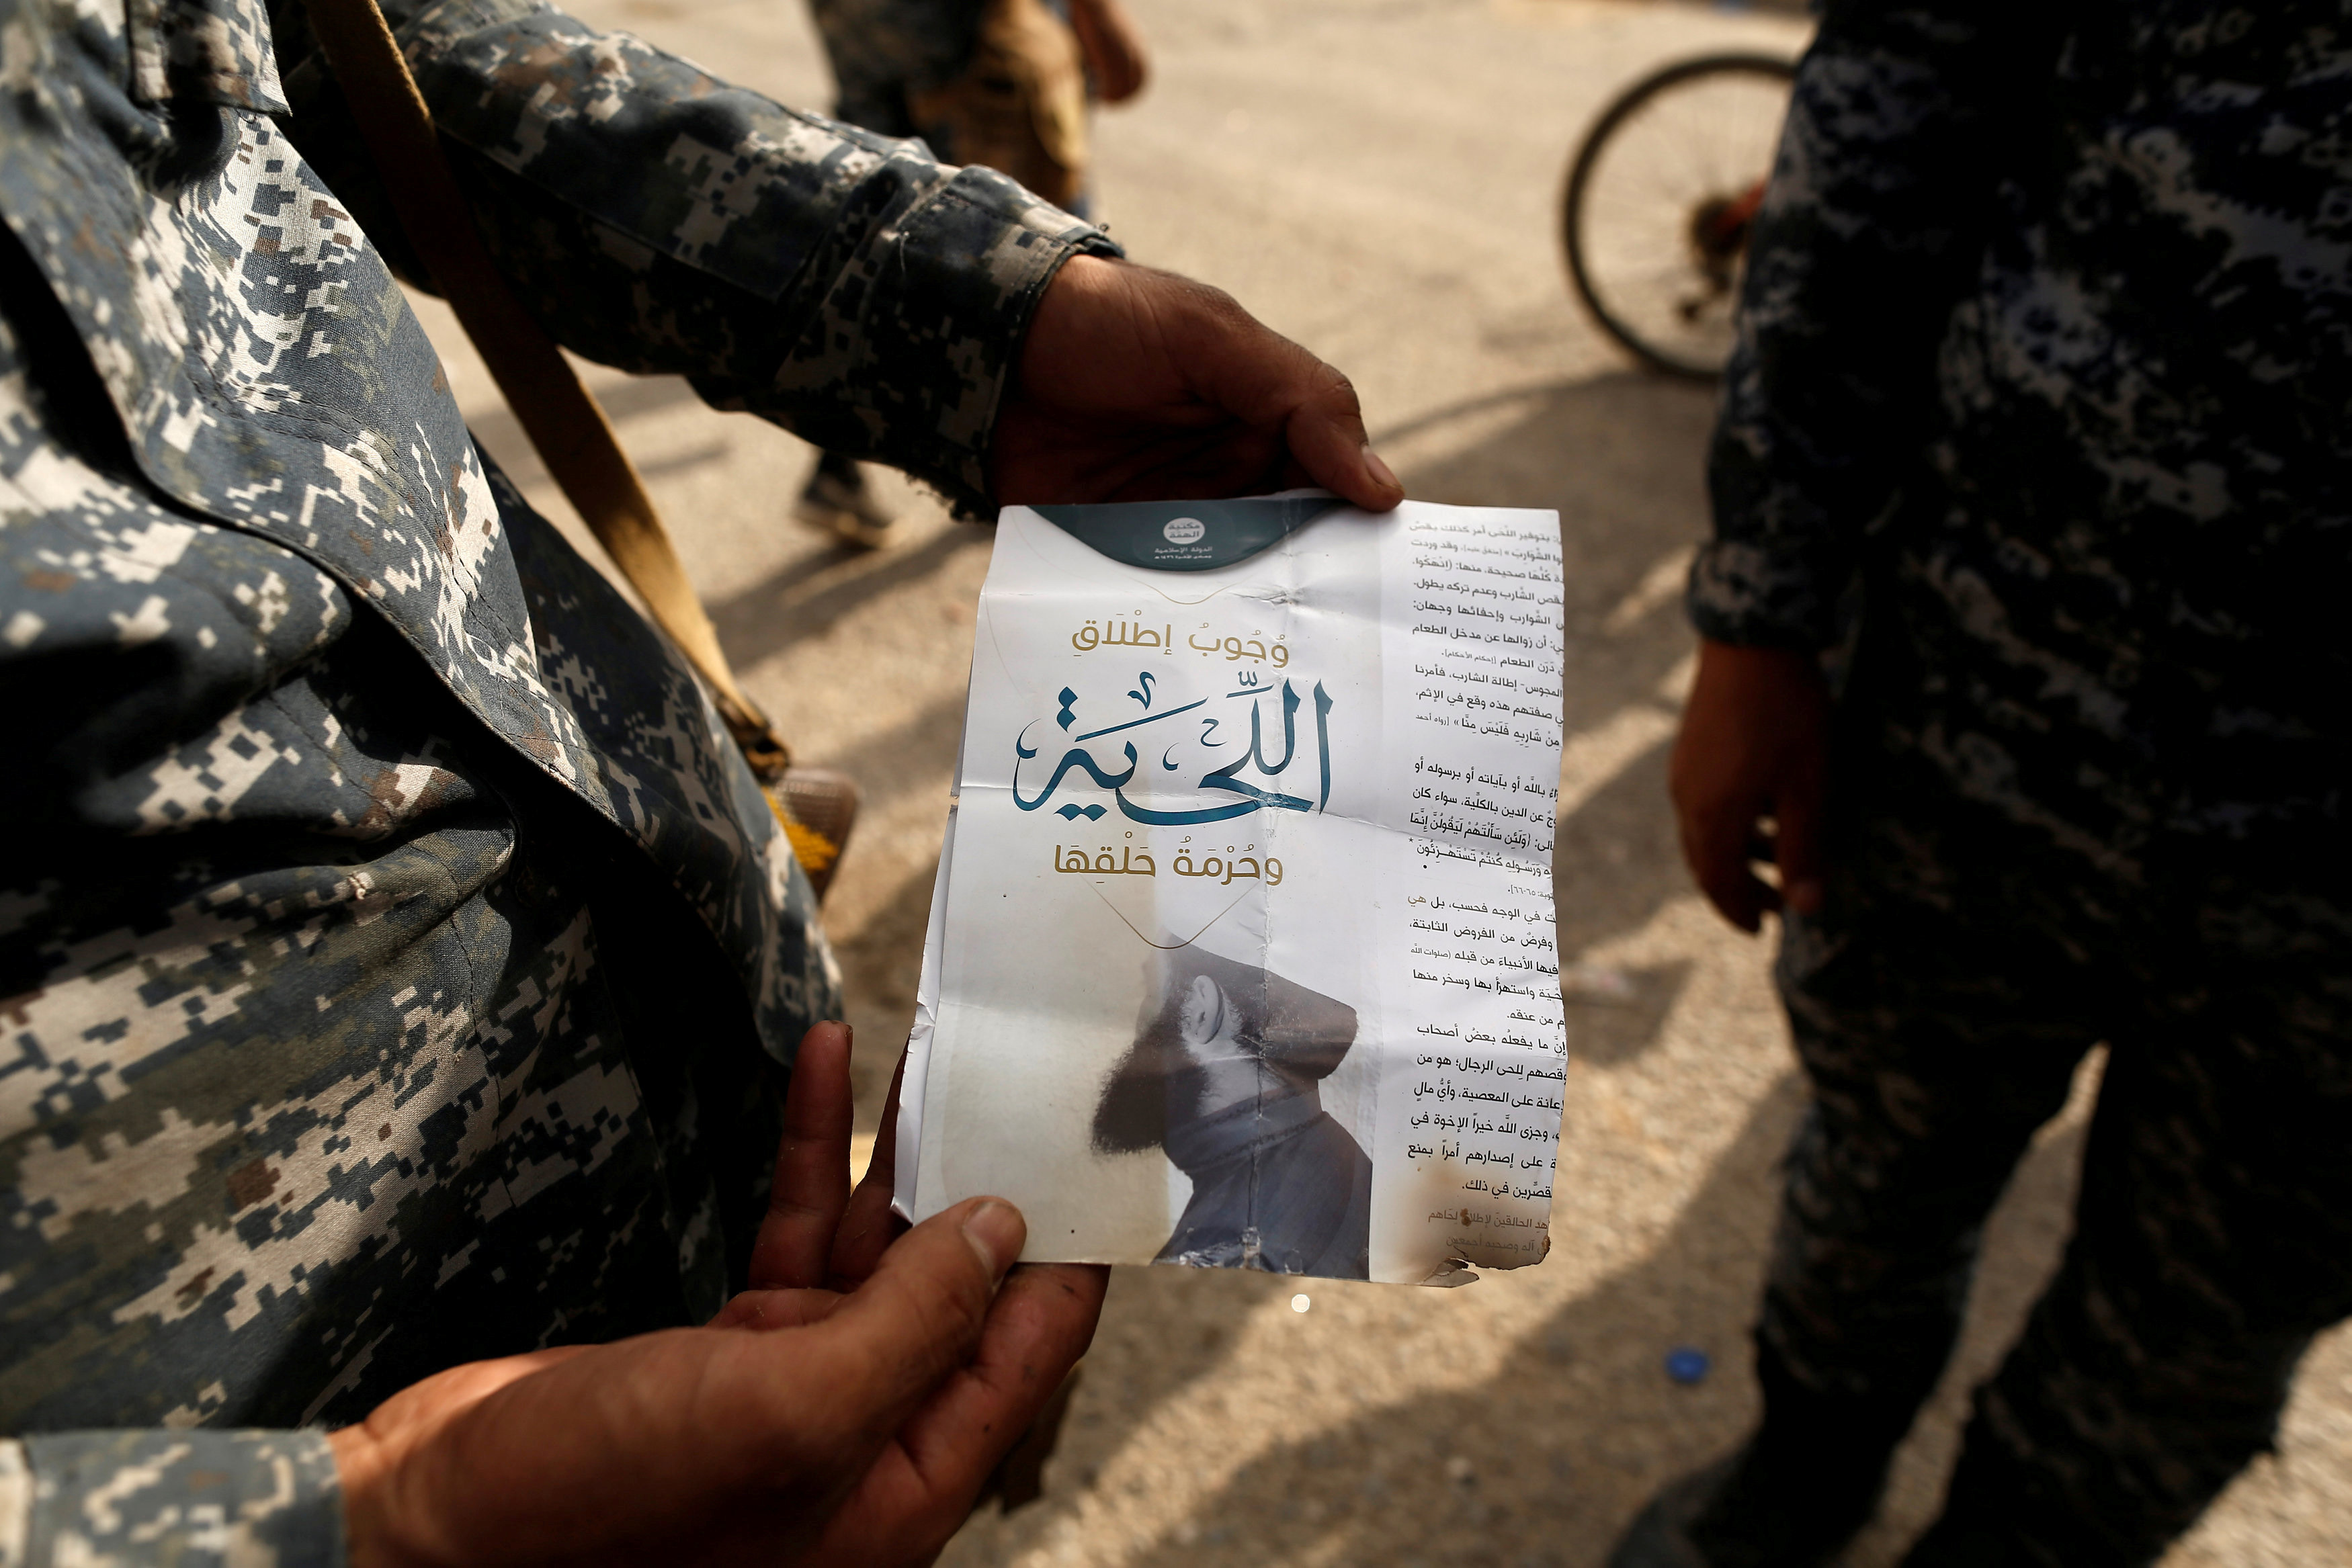 An Iraqi soldier shows a pamphlet that reads 'Wearing beards is compulsory, shaving is prohibited' along a street in the town of Shura, which was recaptured from the Islamic State group, on Saturday.   REUTERS